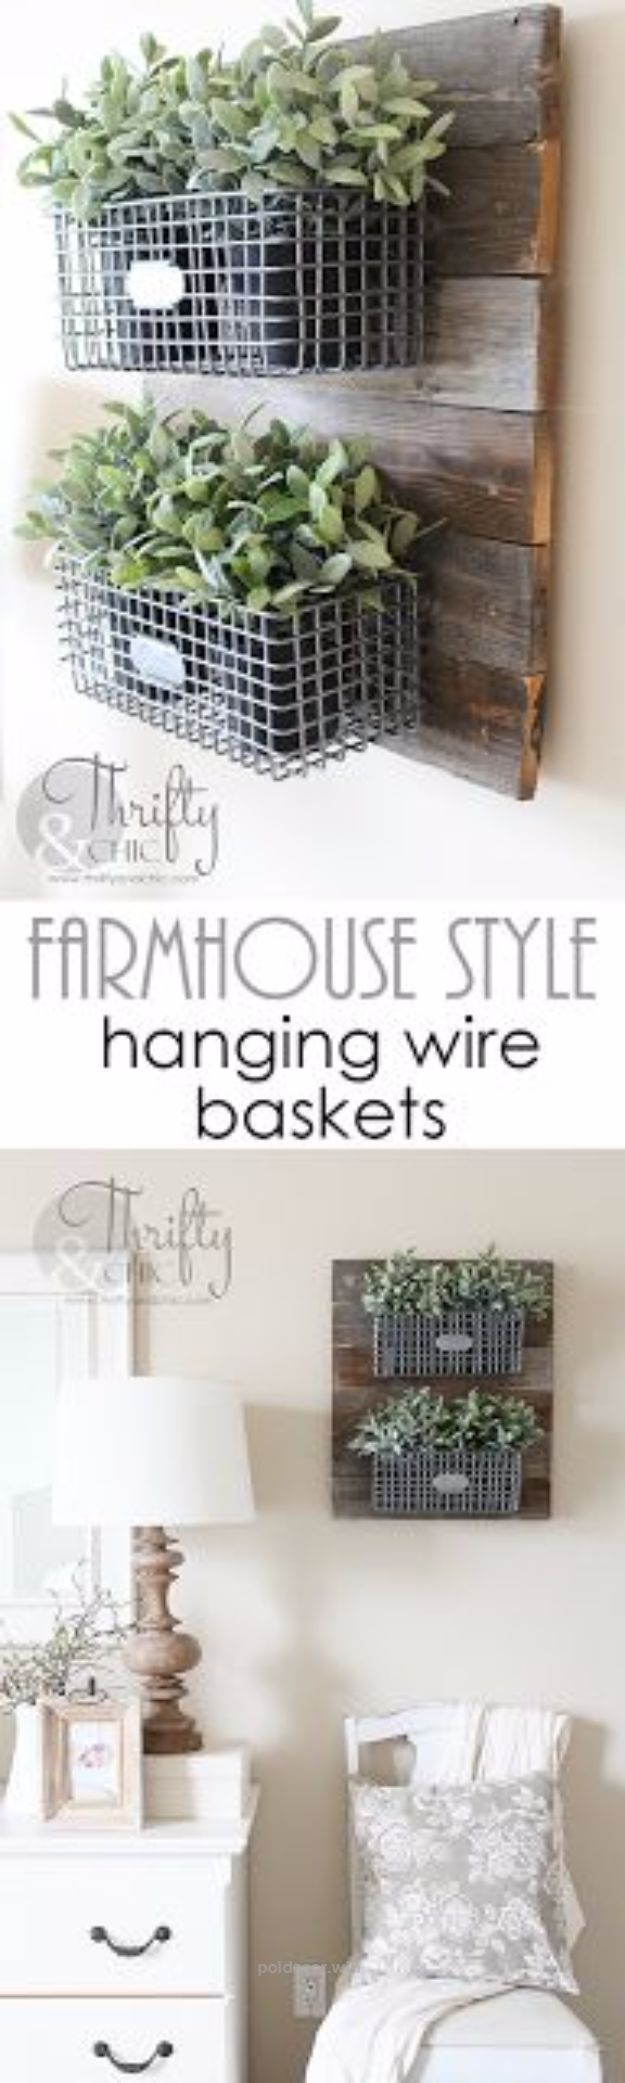 Outstanding Best Country Decor Ideas – Farmhouse Style Hanging Wire Baskets – Rustic Farmhouse Decor Tutorials and Easy Vintage Shabby Chic Home Decor for Kitchen, Living Room and Bathroom – Creativ .. #vintagefarmhousedecor